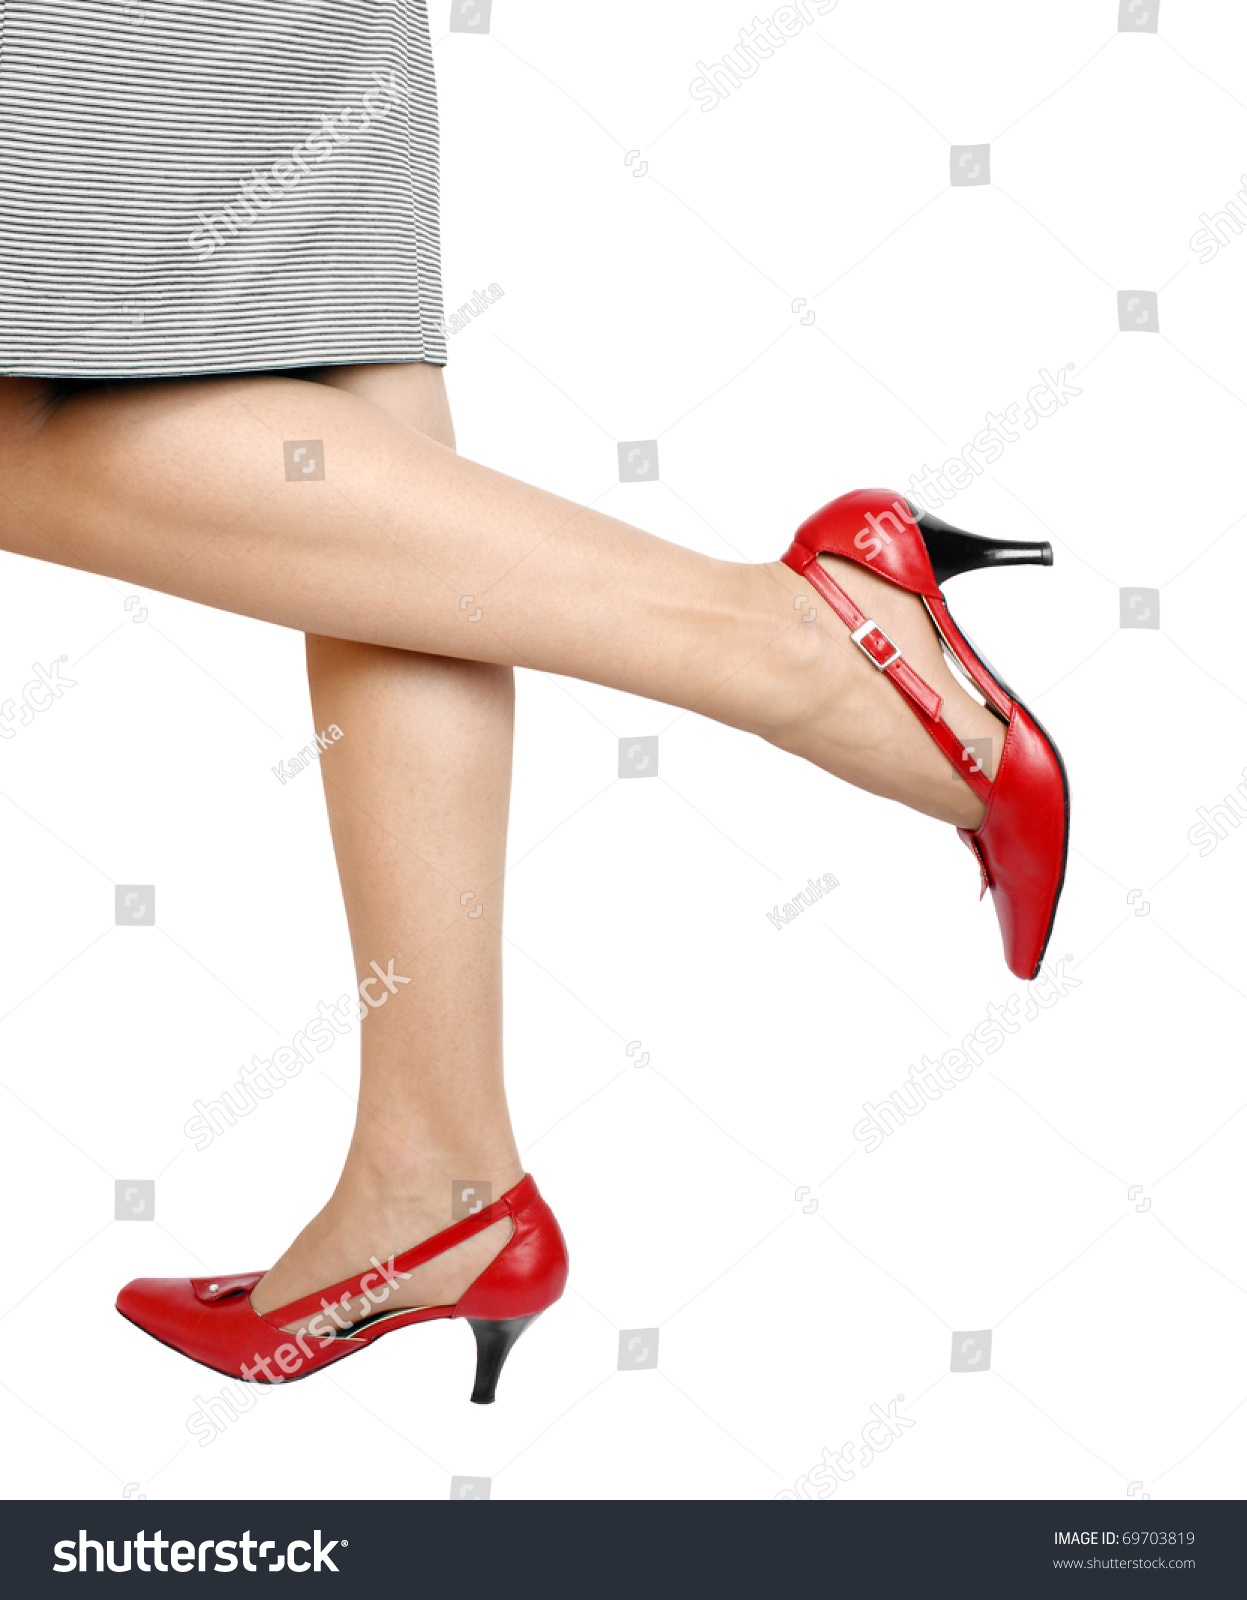 We offer you a very large selection of Overstock Shoes. Simply click on a size below to choose from dress Overstock Shoes, casual Overstock Shoes, or athletic Overstock Shoes. To go to our home page, click here. To use our Advanced Search, click here.